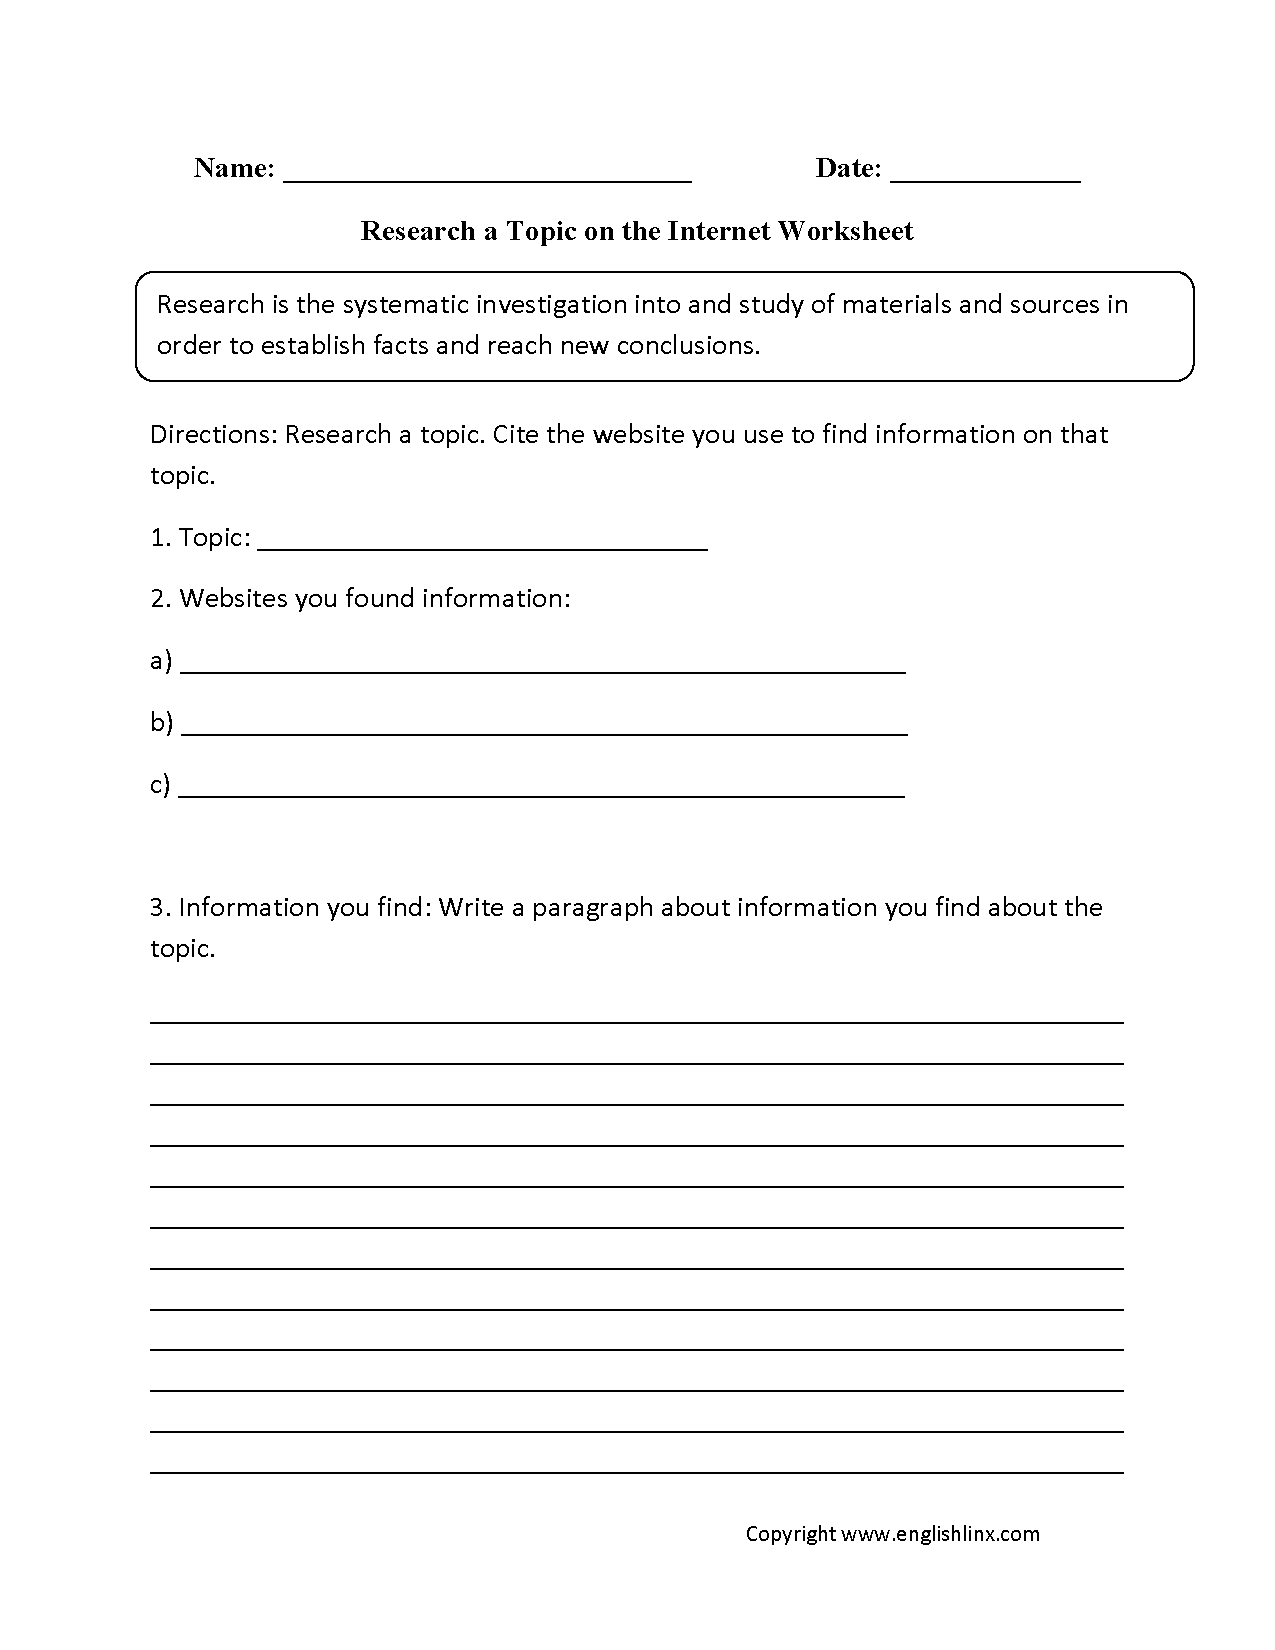 Aldiablosus  Winsome Englishlinxcom  Research Worksheets With Excellent On The Internet Worksheet With Archaic Pronoun Worksheets High School Also The Mitten Worksheets In Addition Math For Th Grade Worksheets And Free Preschool Math Worksheets As Well As Odd And Even Functions Worksheet Additionally Ocean Floor Worksheet From Englishlinxcom With Aldiablosus  Excellent Englishlinxcom  Research Worksheets With Archaic On The Internet Worksheet And Winsome Pronoun Worksheets High School Also The Mitten Worksheets In Addition Math For Th Grade Worksheets From Englishlinxcom